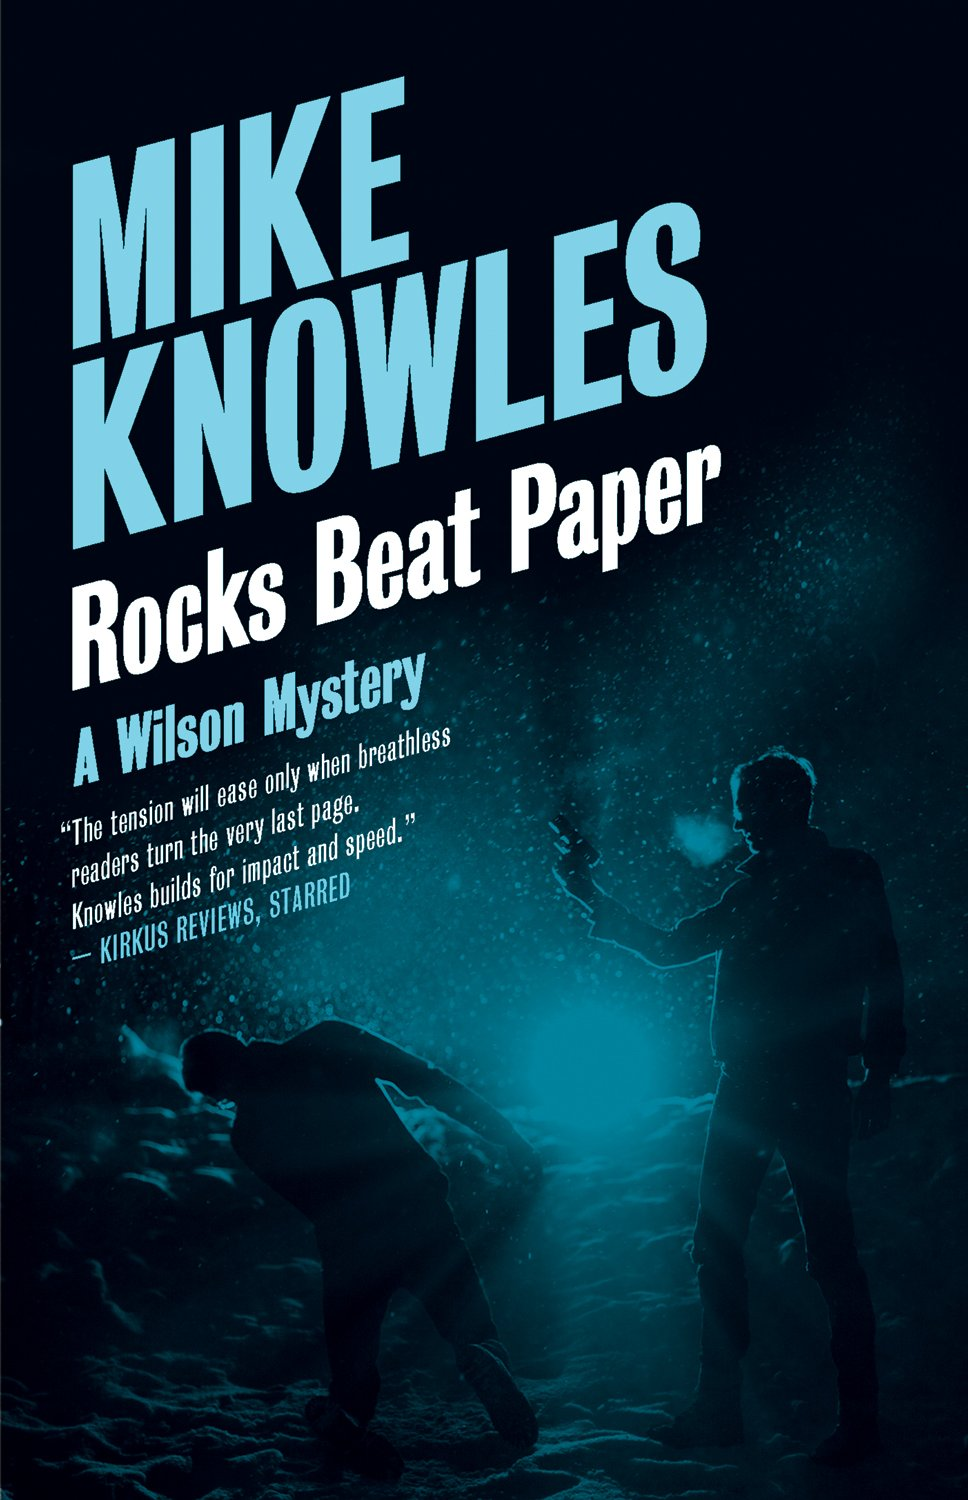 ROCKS BEAT PAPER (Wilson Mystery): Amazon.es: Knowles, Mike ...